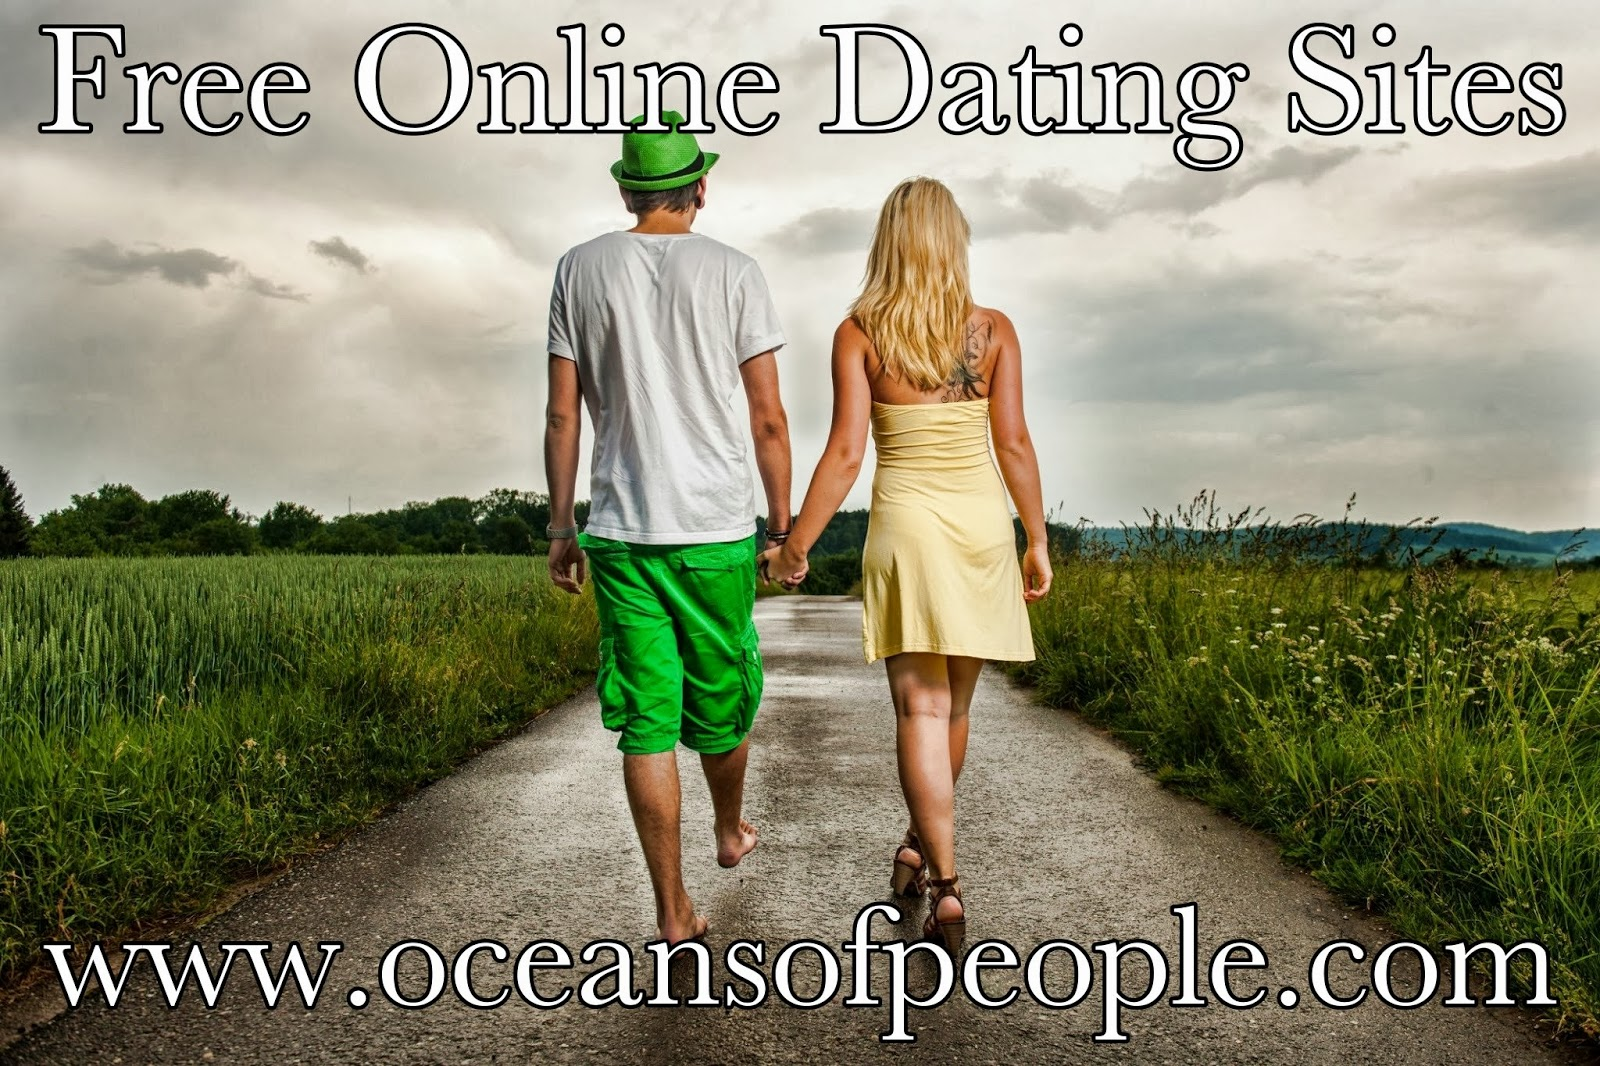 Worst free online dating sites